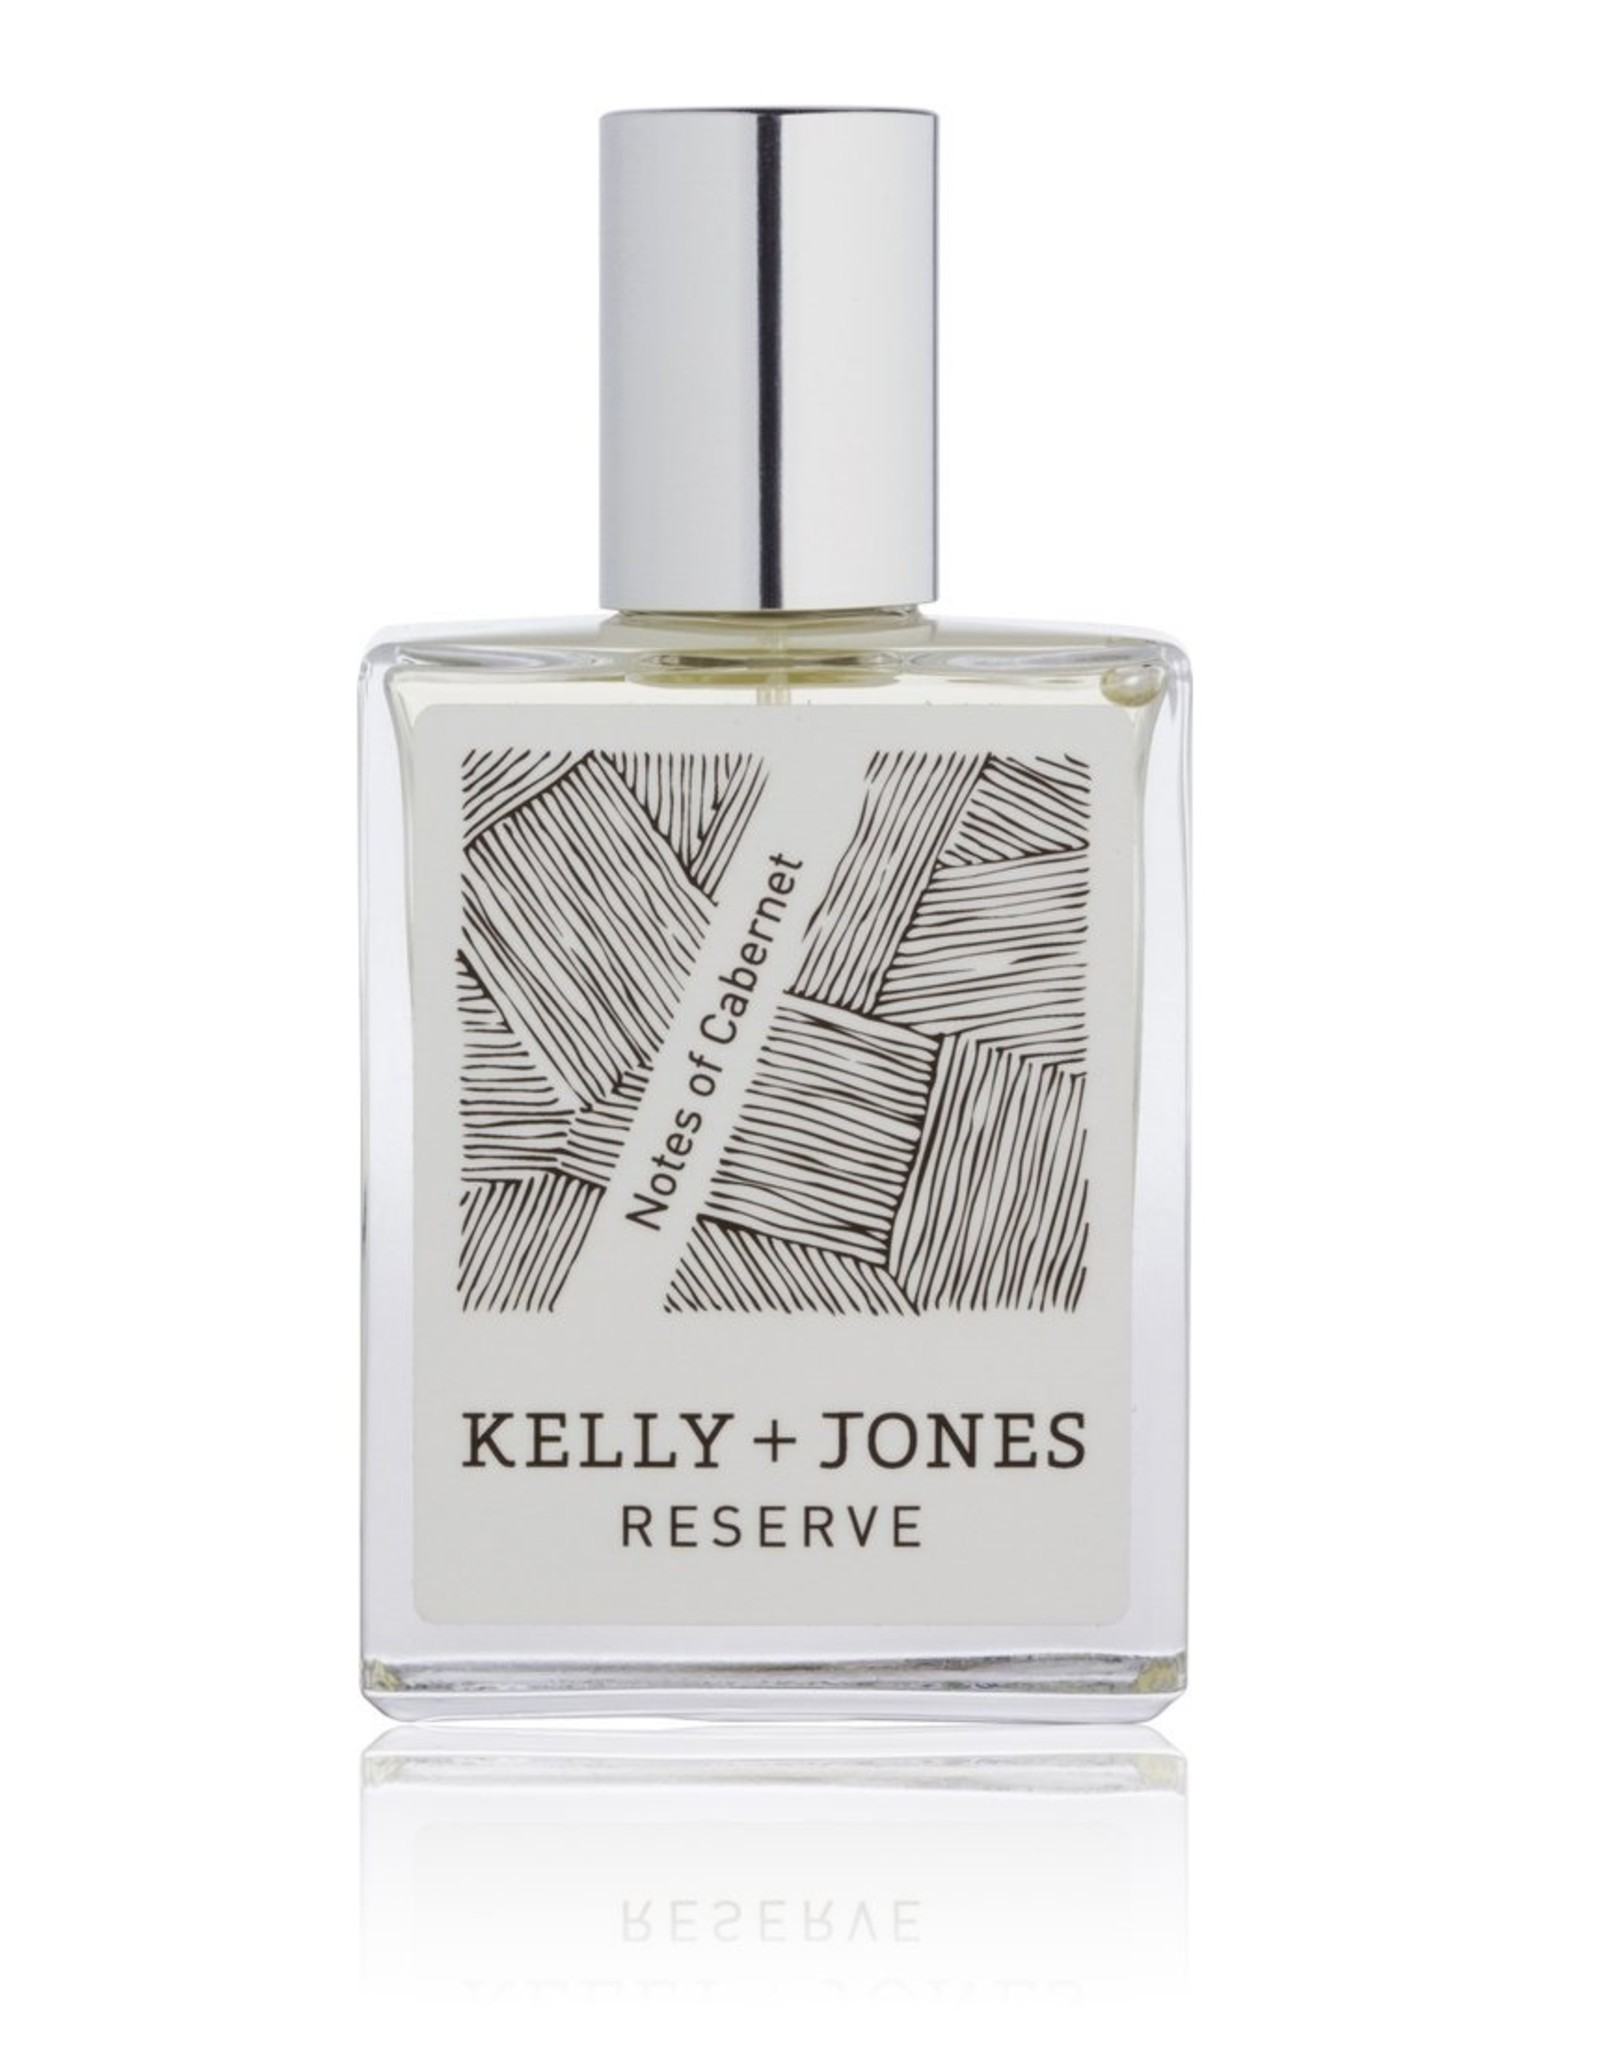 Kelly+jones Parfum Cabernet